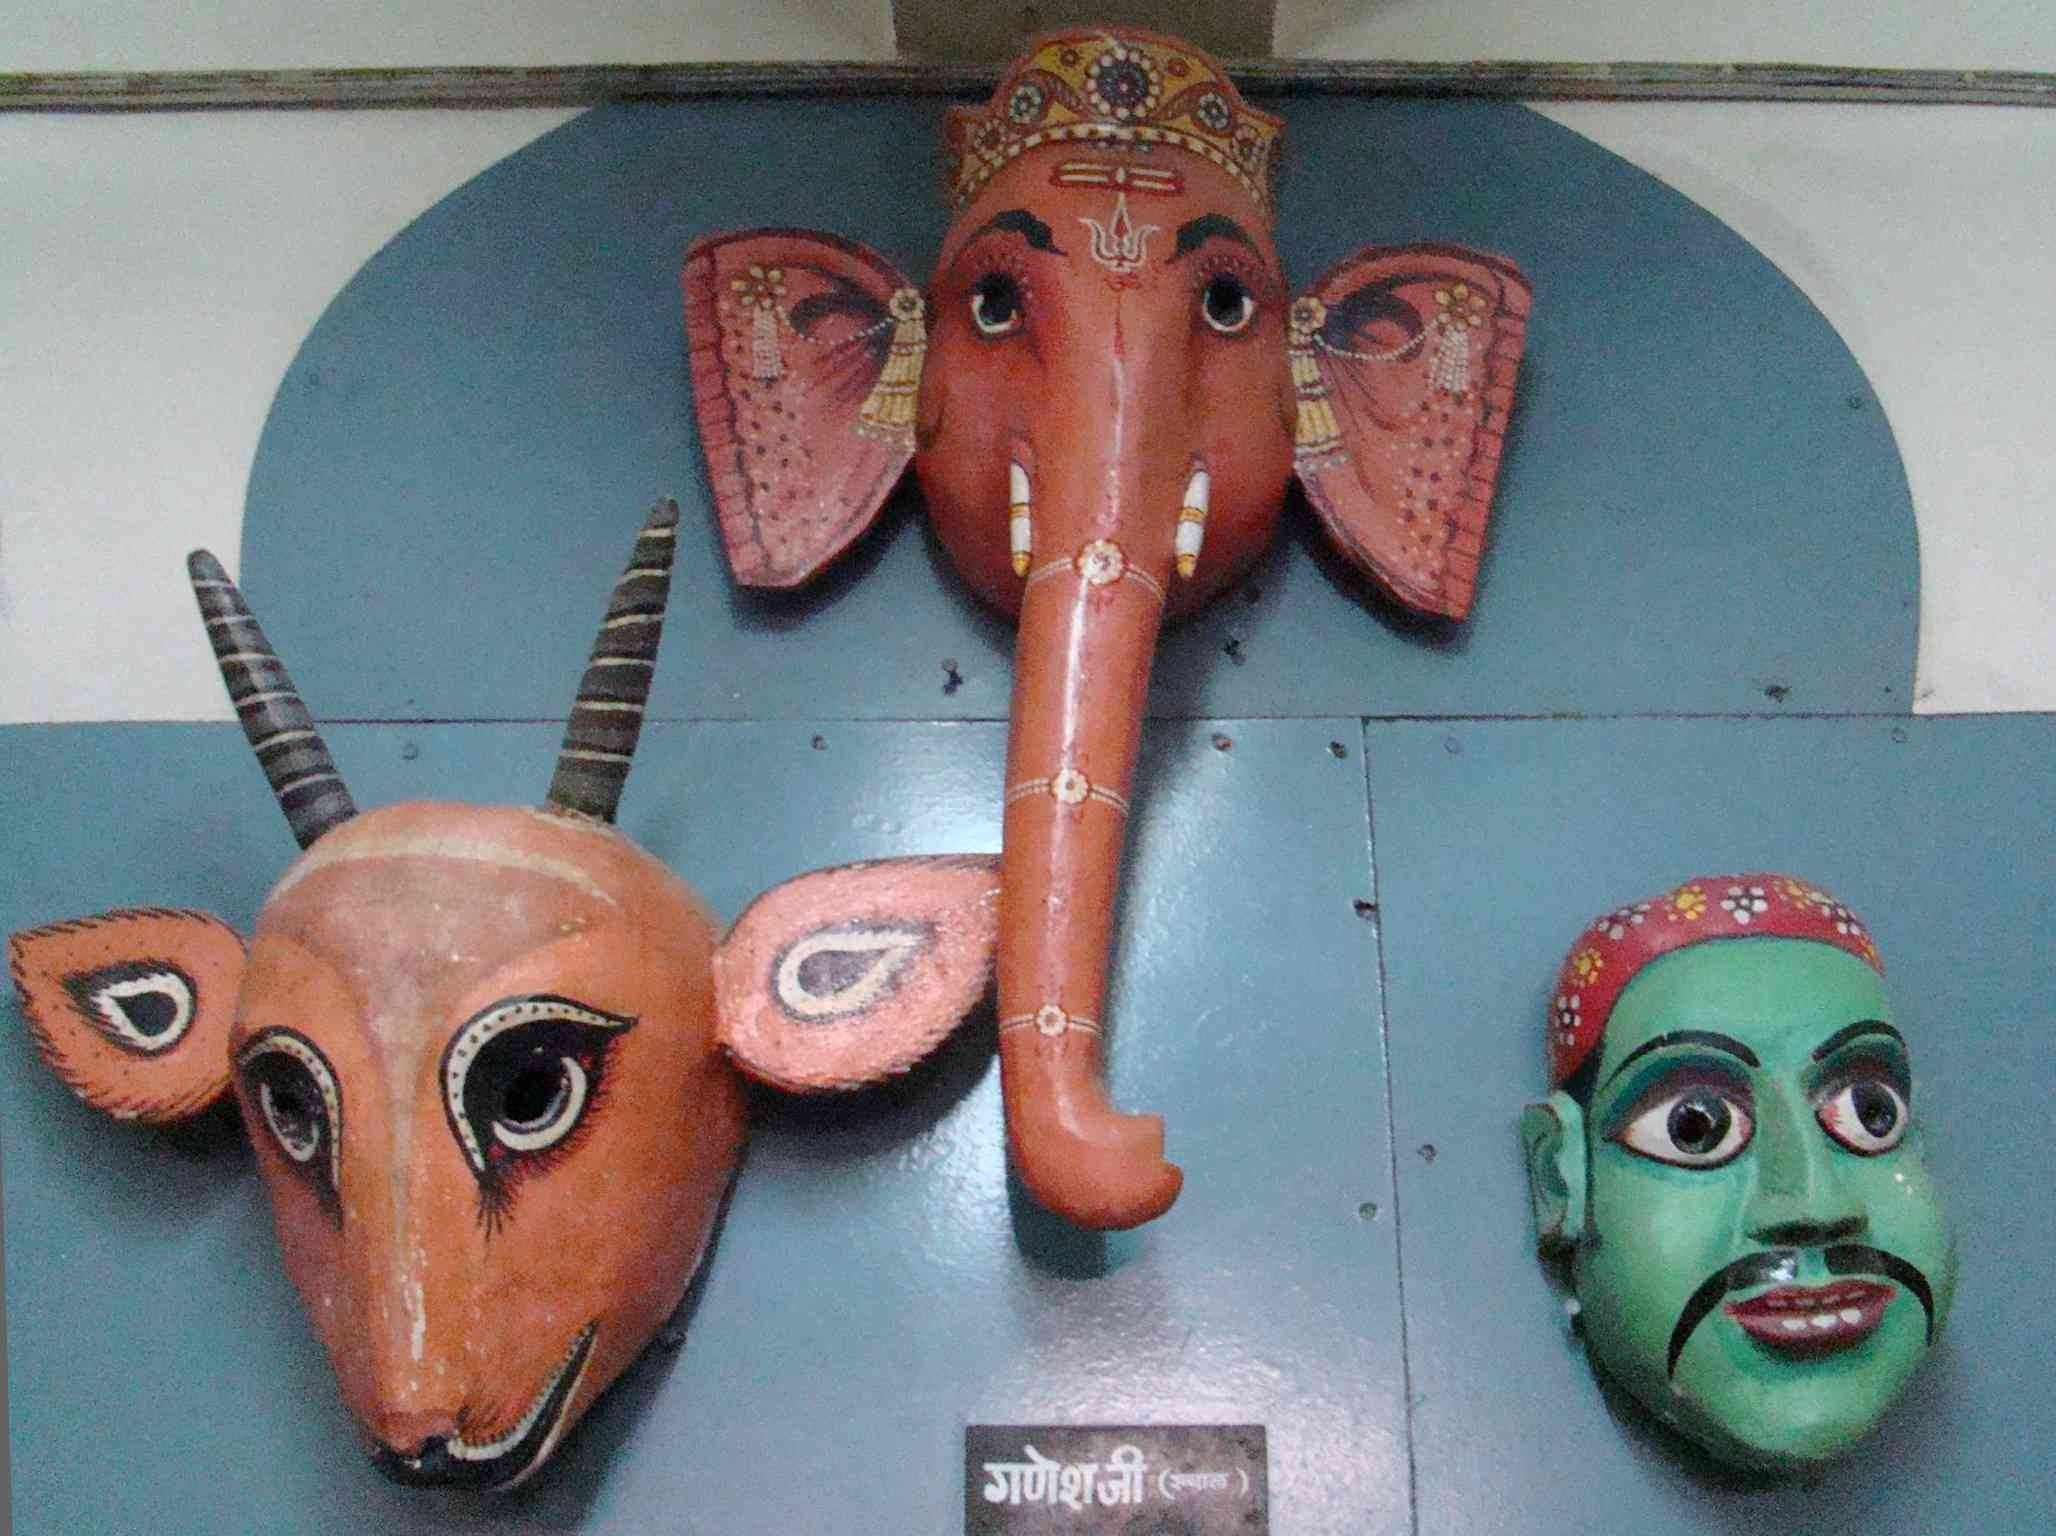 three masks (antelope, elephant, and green-faced man) hung on a wall